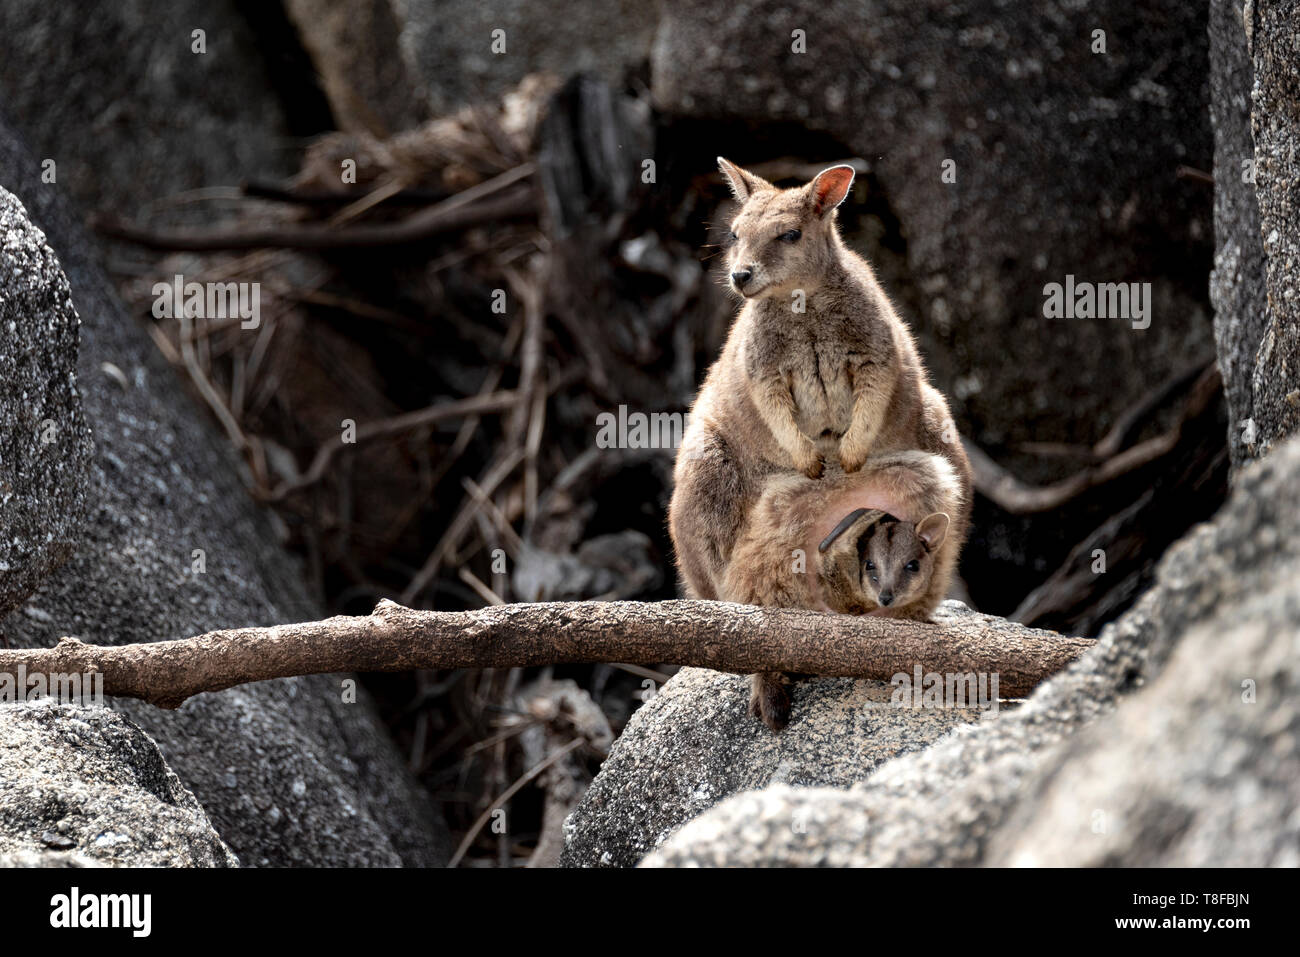 Wallaby with big joey onboard Stock Photo